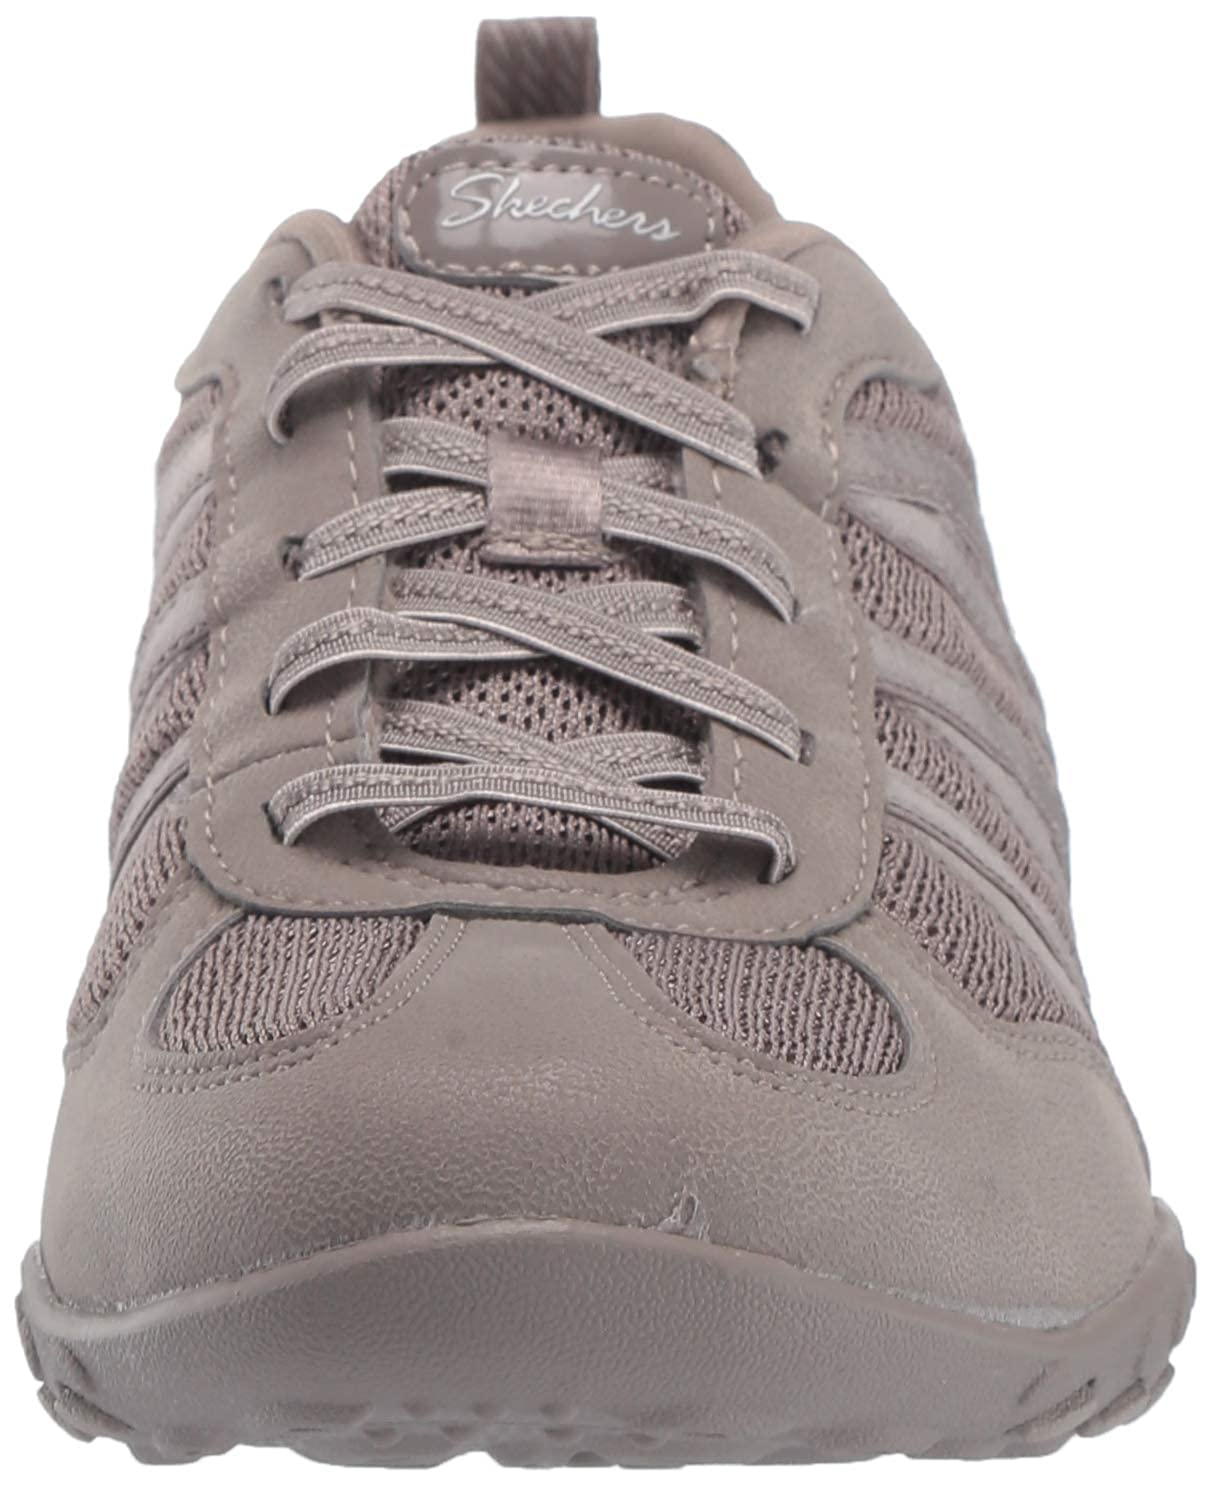 Skechers Damen Breathe-Easy - Be-Relaxed Slip On Sneaker Beige (Taupe Micro Leather/Mesh/Natural Trim Tpe)